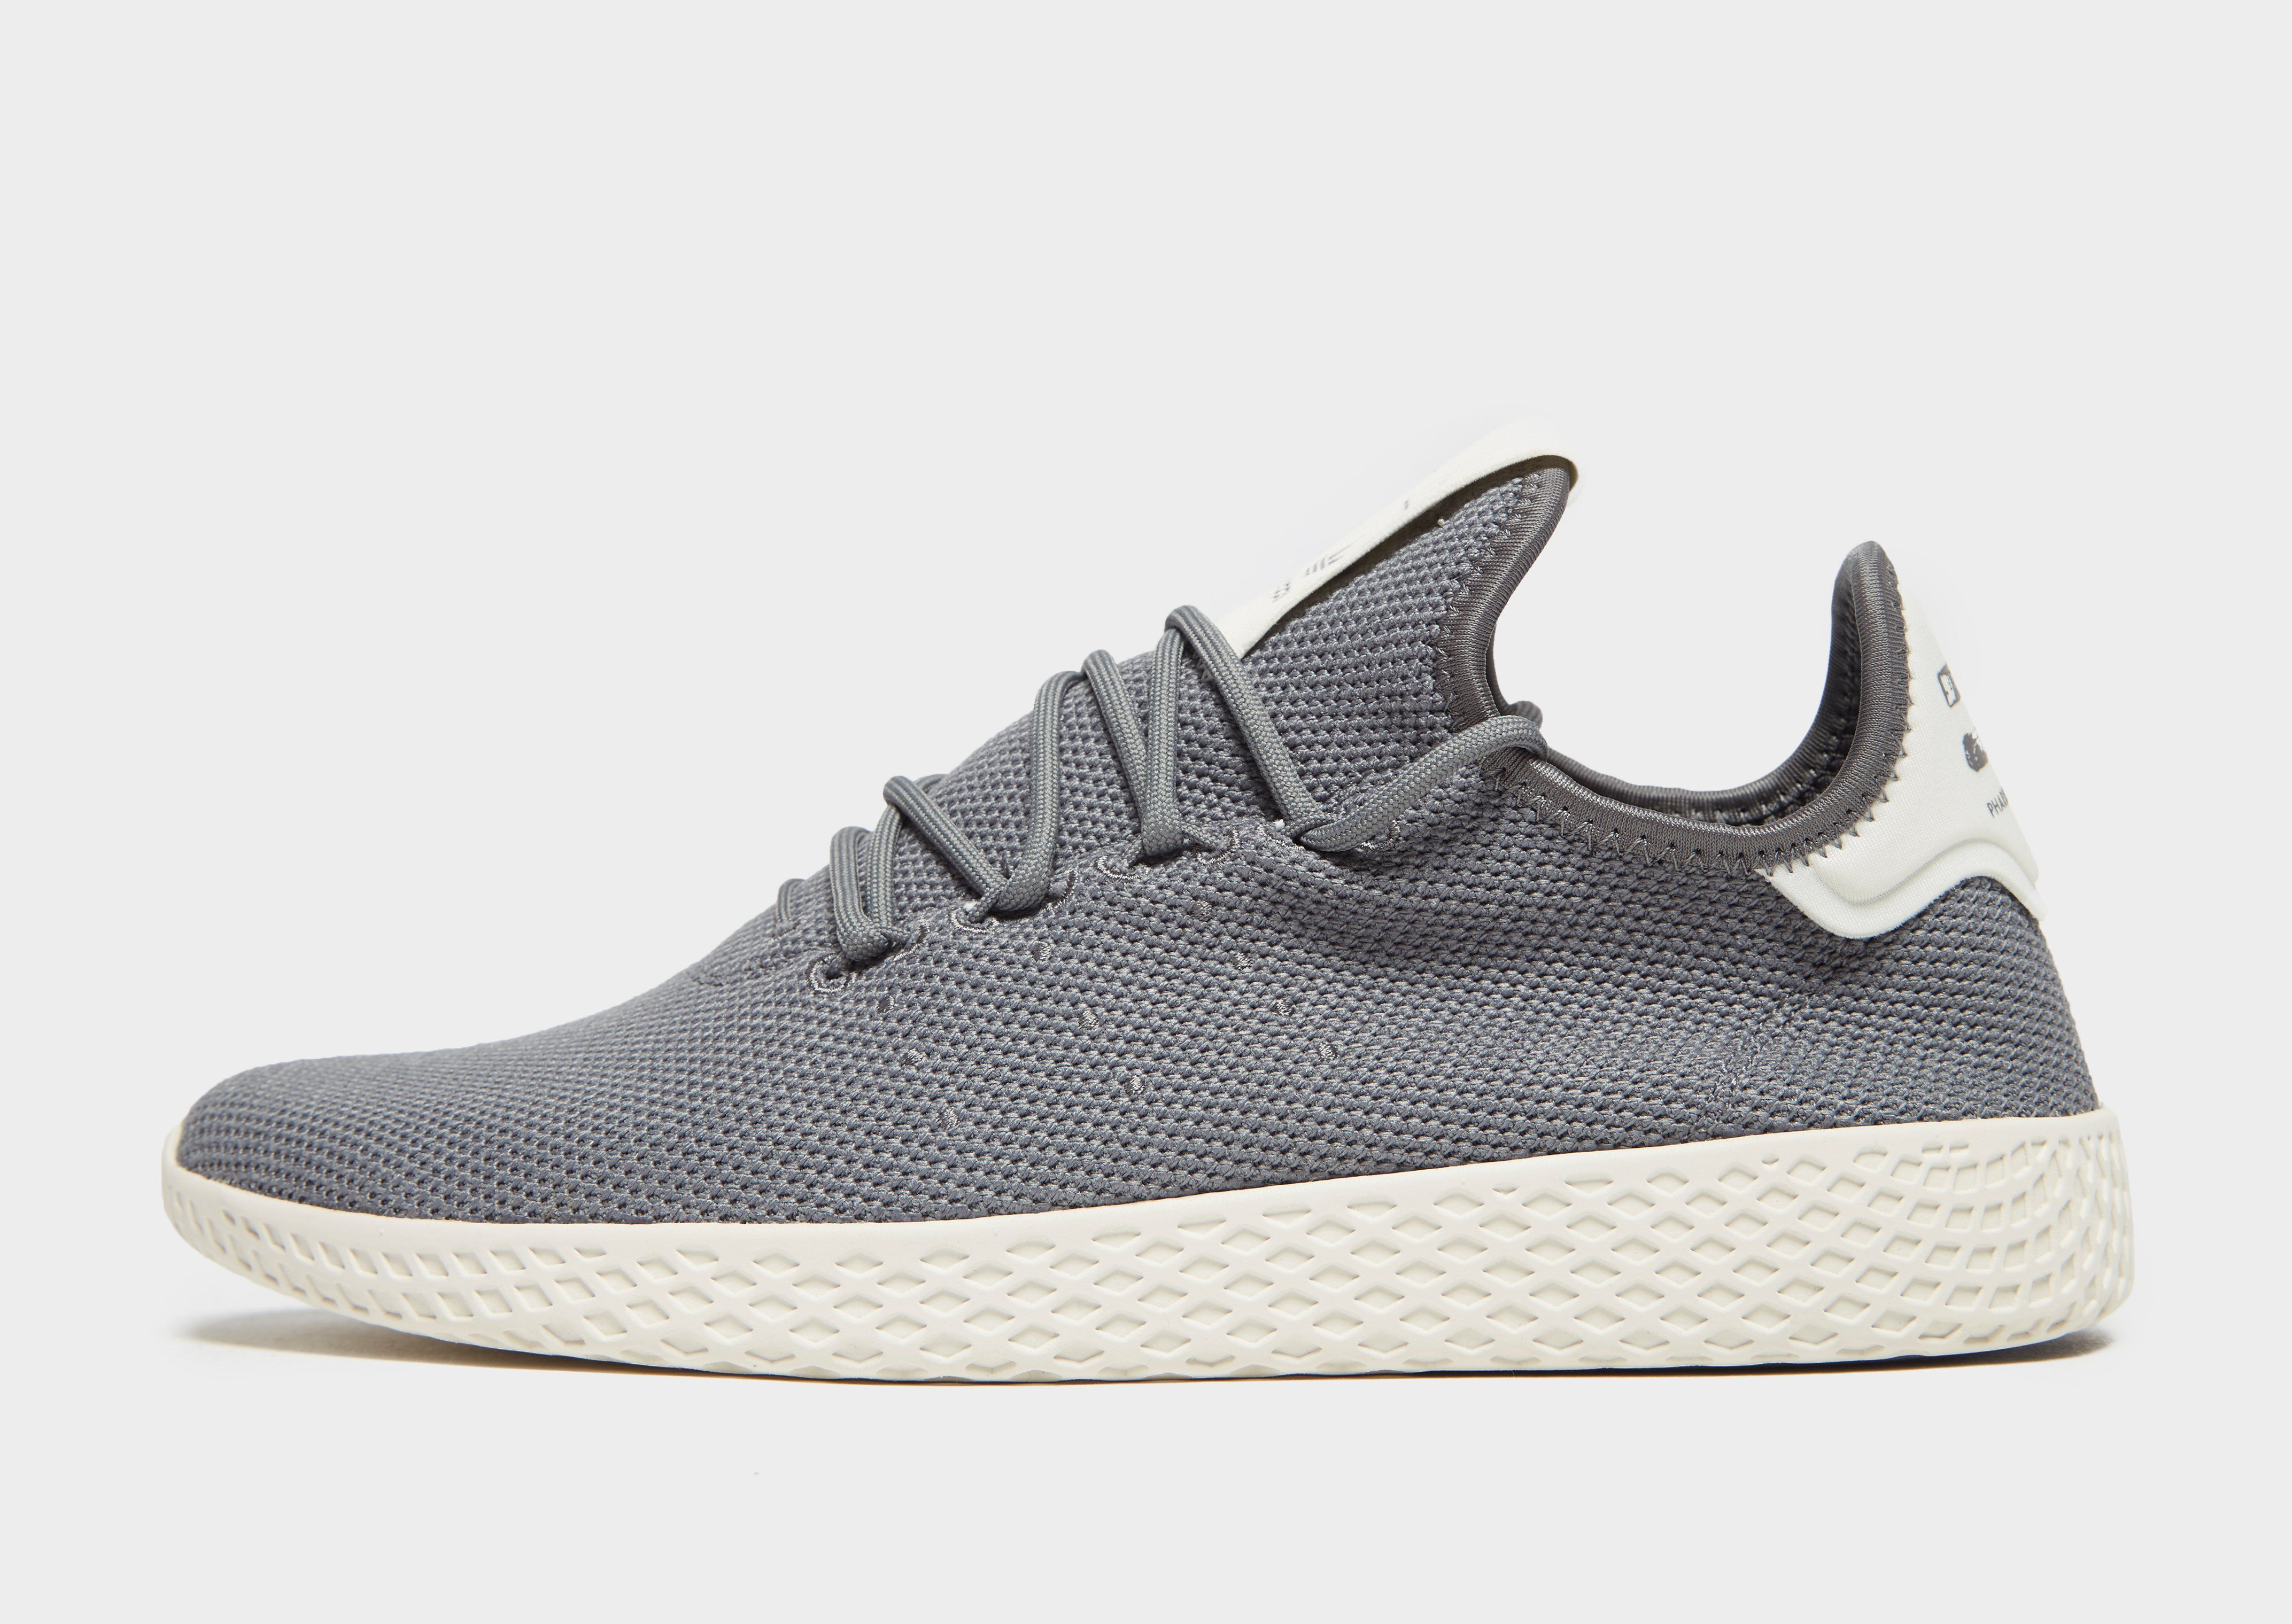 adidas Originals x Pharrell Williams Tennis Hu Homme